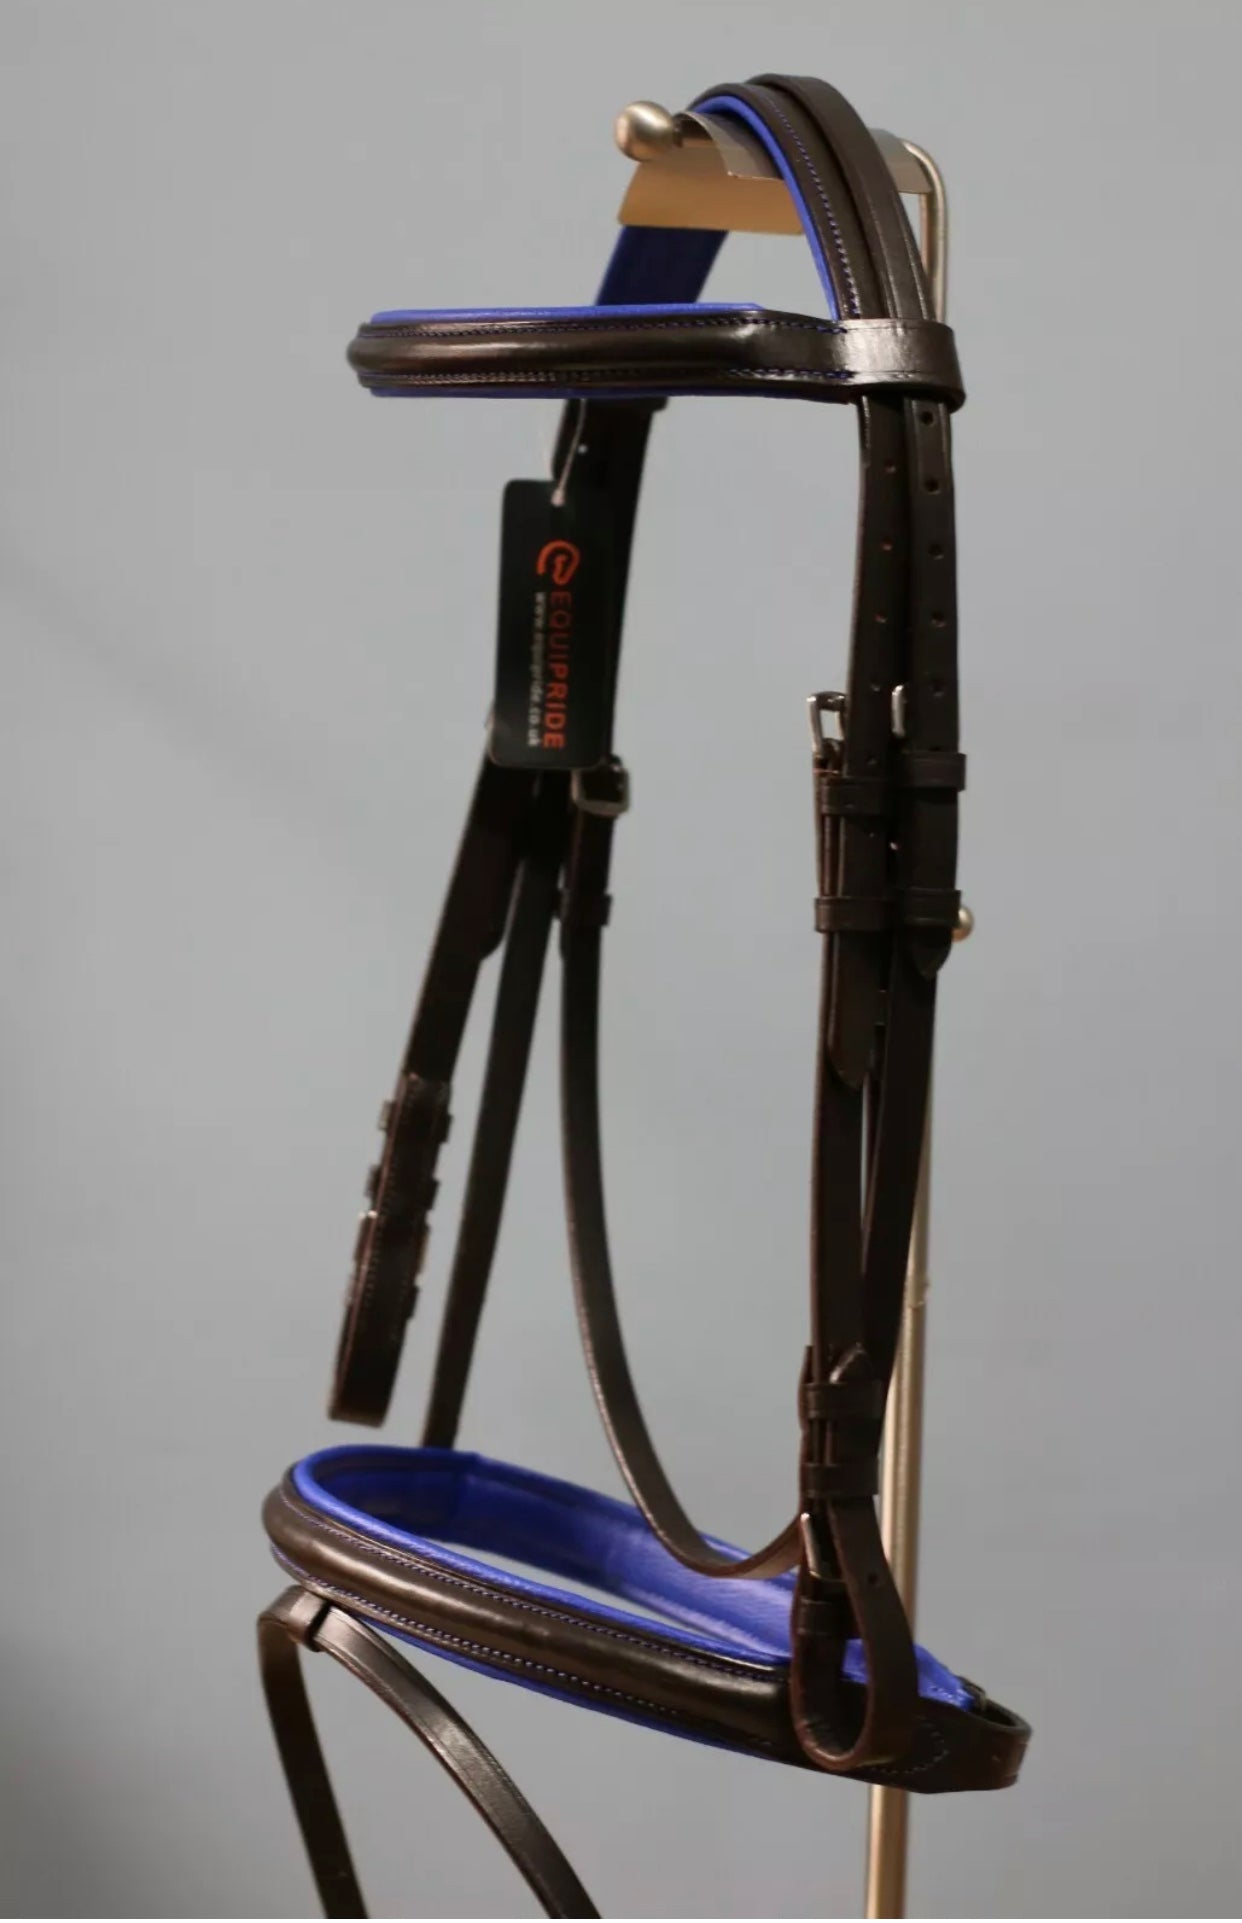 LEATHER PADDED COMFORT BRIDLE WITH BLUE COLOUR PADDING CONTRAST STITCHING